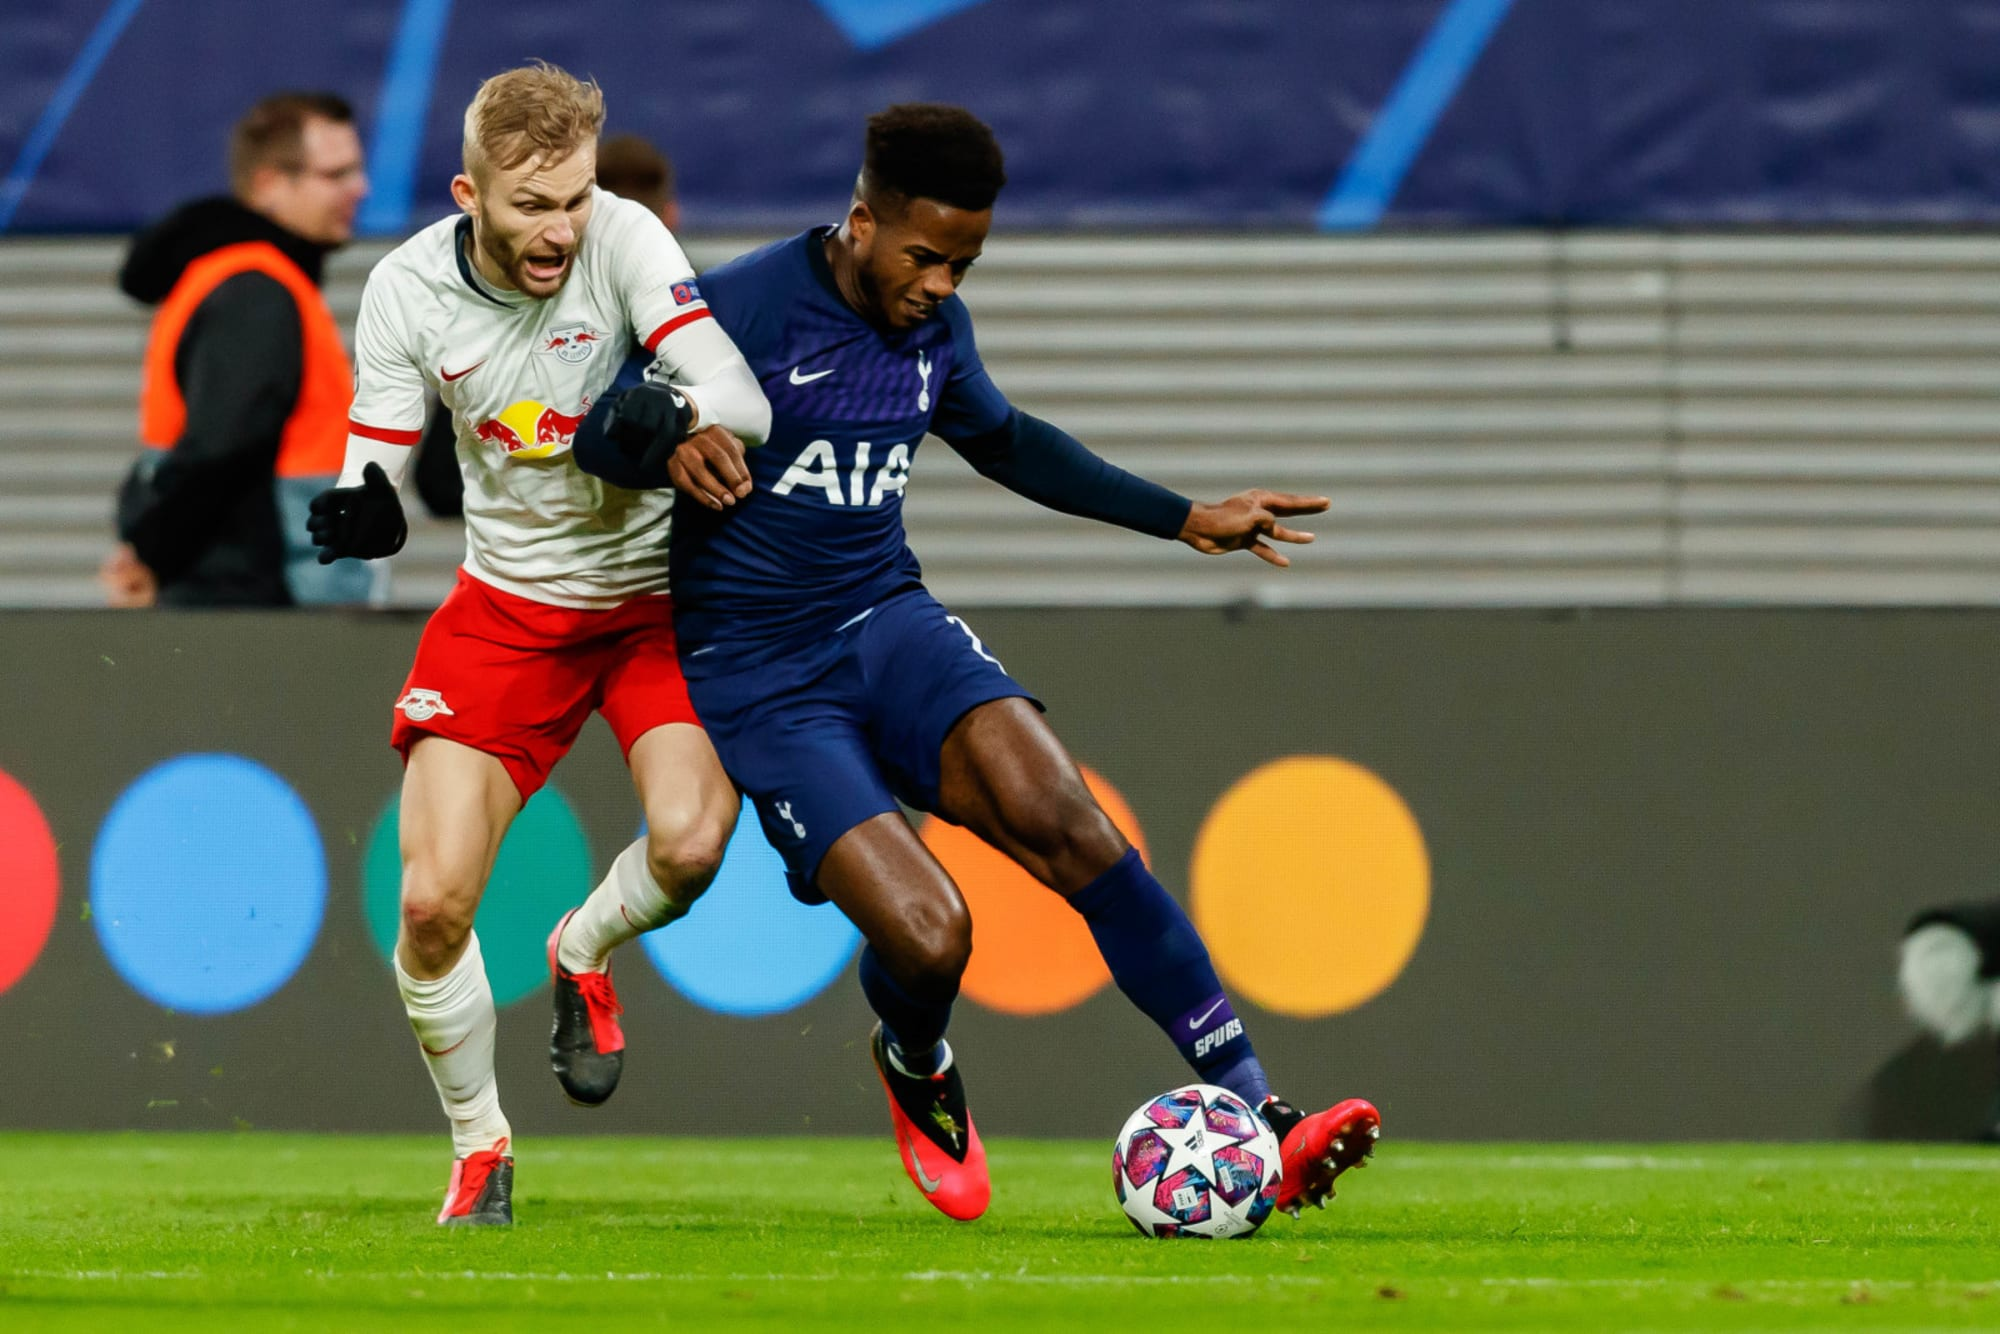 Tottenham: Ryan Sessegnon and his future with Spurs